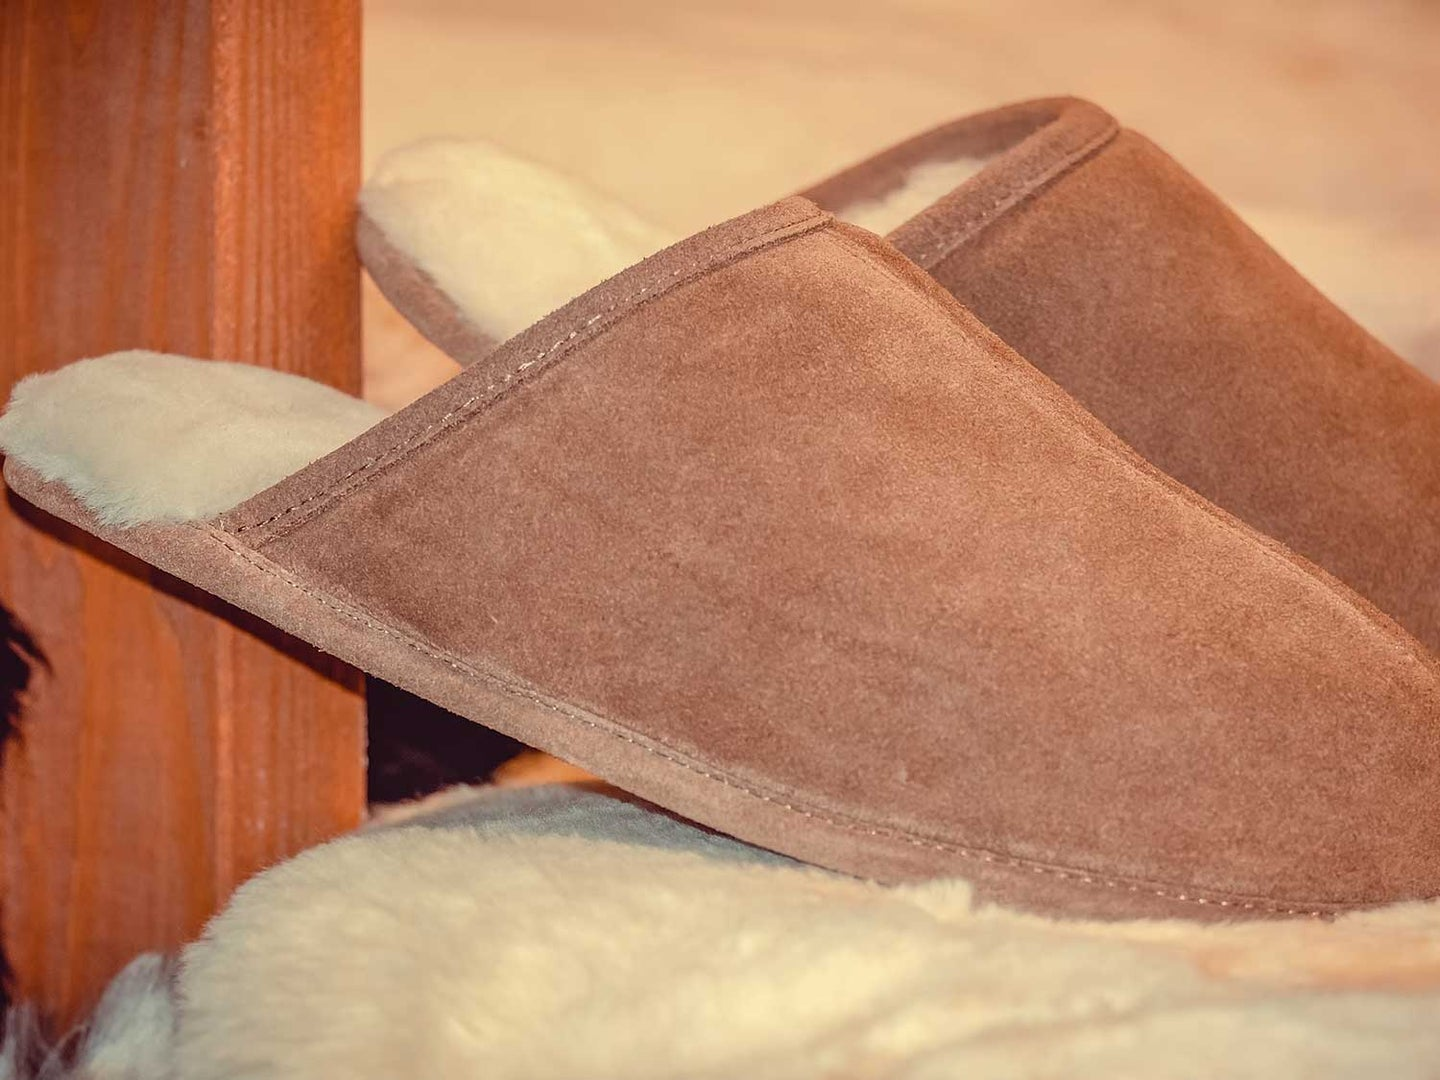 Slippers on bed.